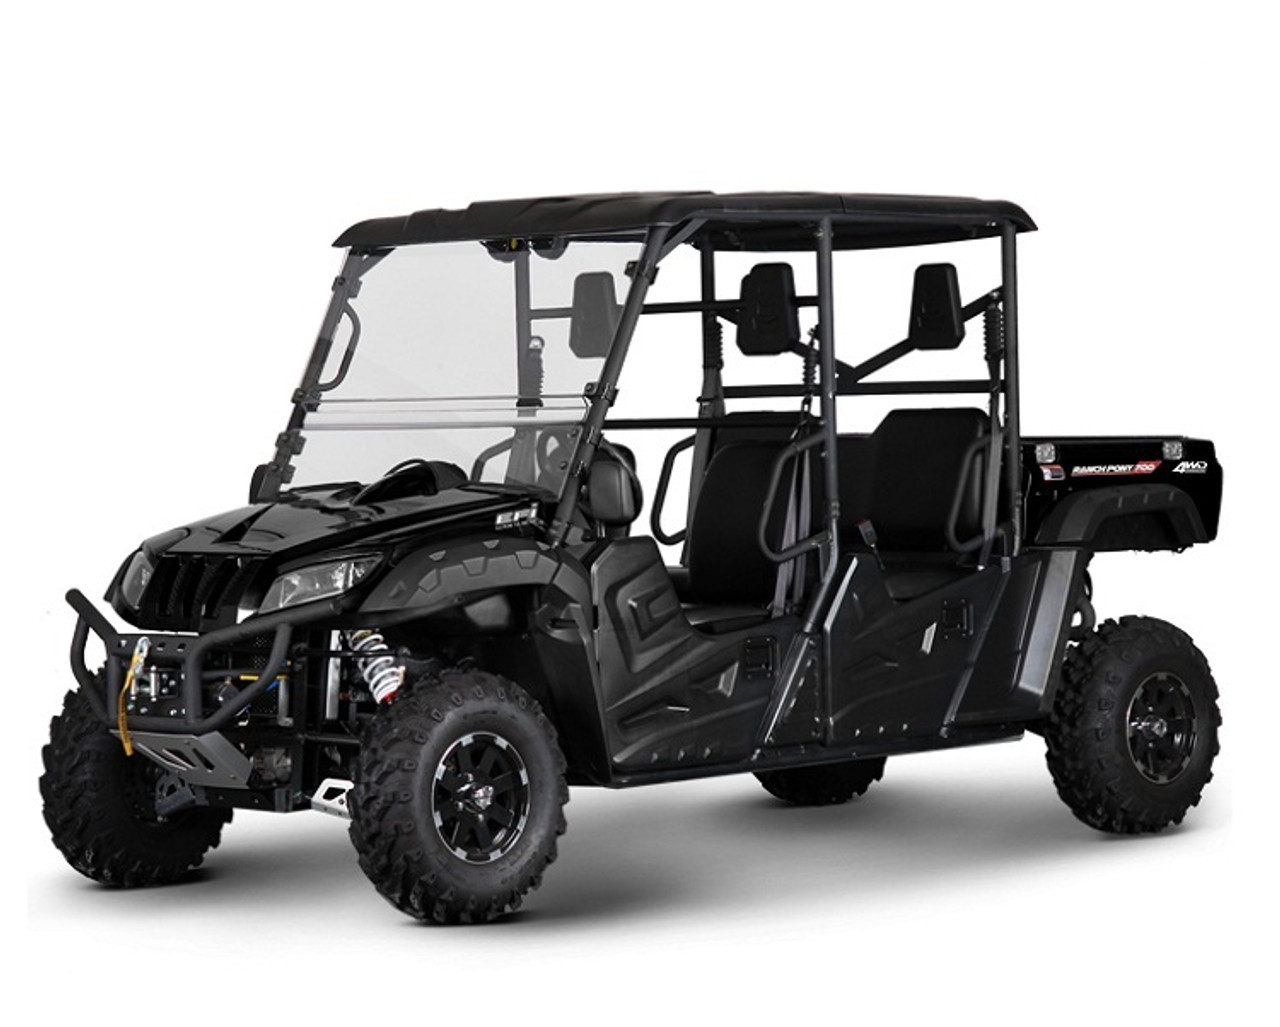 BMS RANCH PONY 700CC EFI 4-SEATER UTV, 43 HP EFI ENGINE, FULLY AUTOMATIC